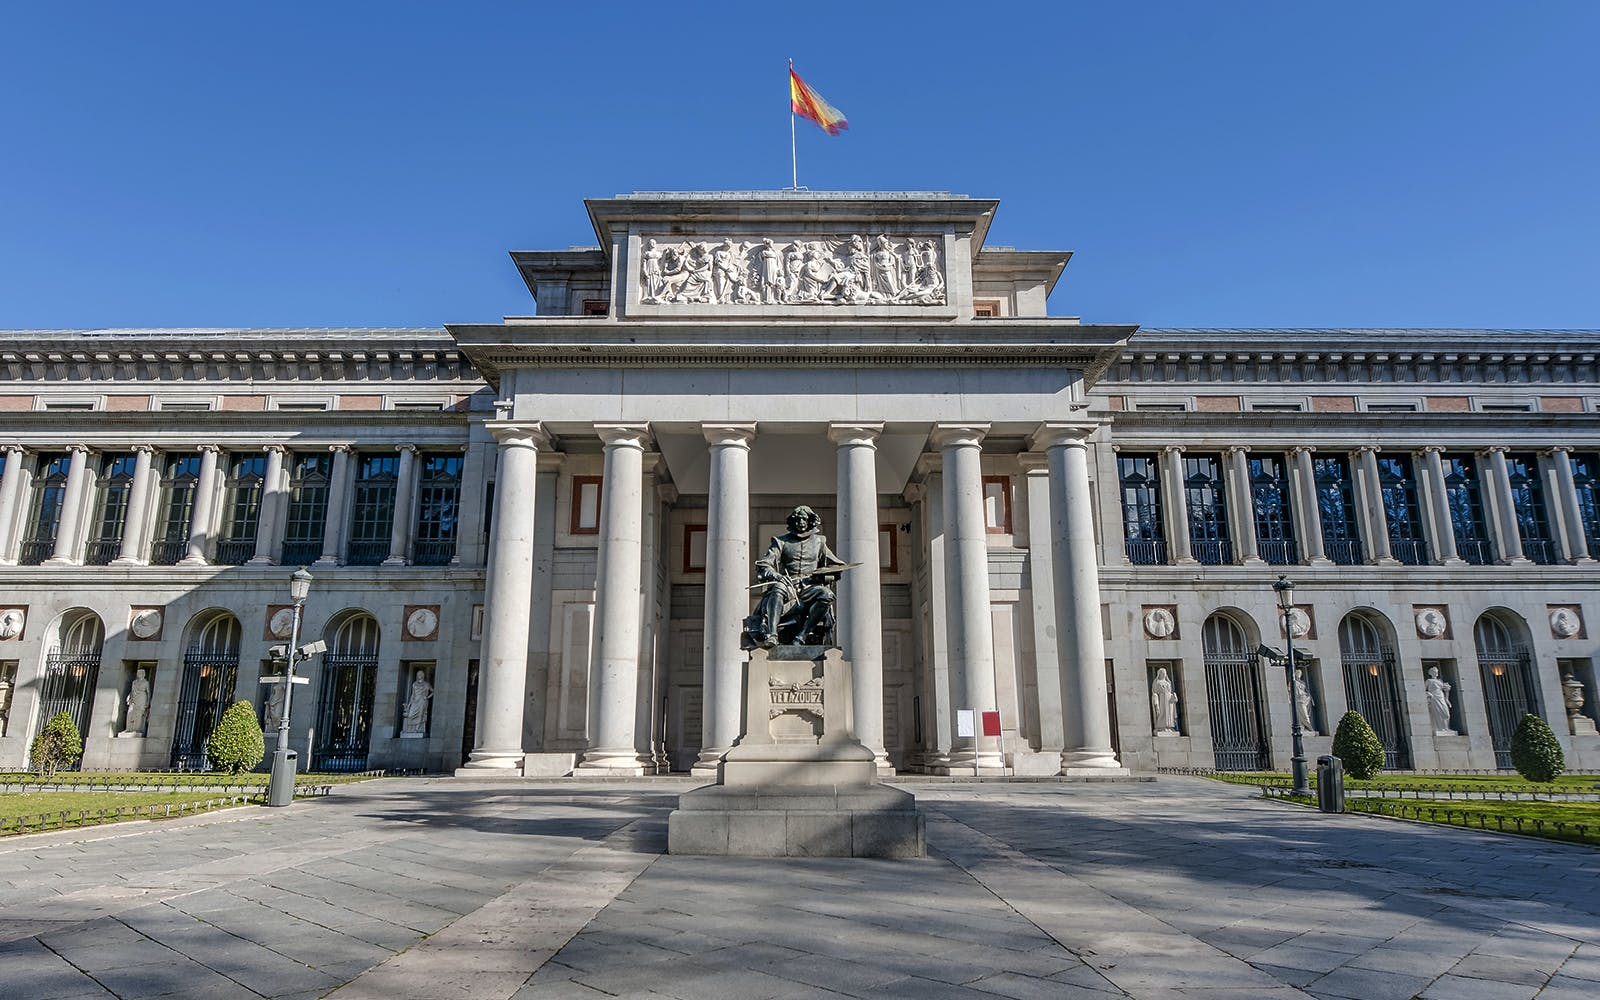 Skip the Line Tickets to Prado Museum